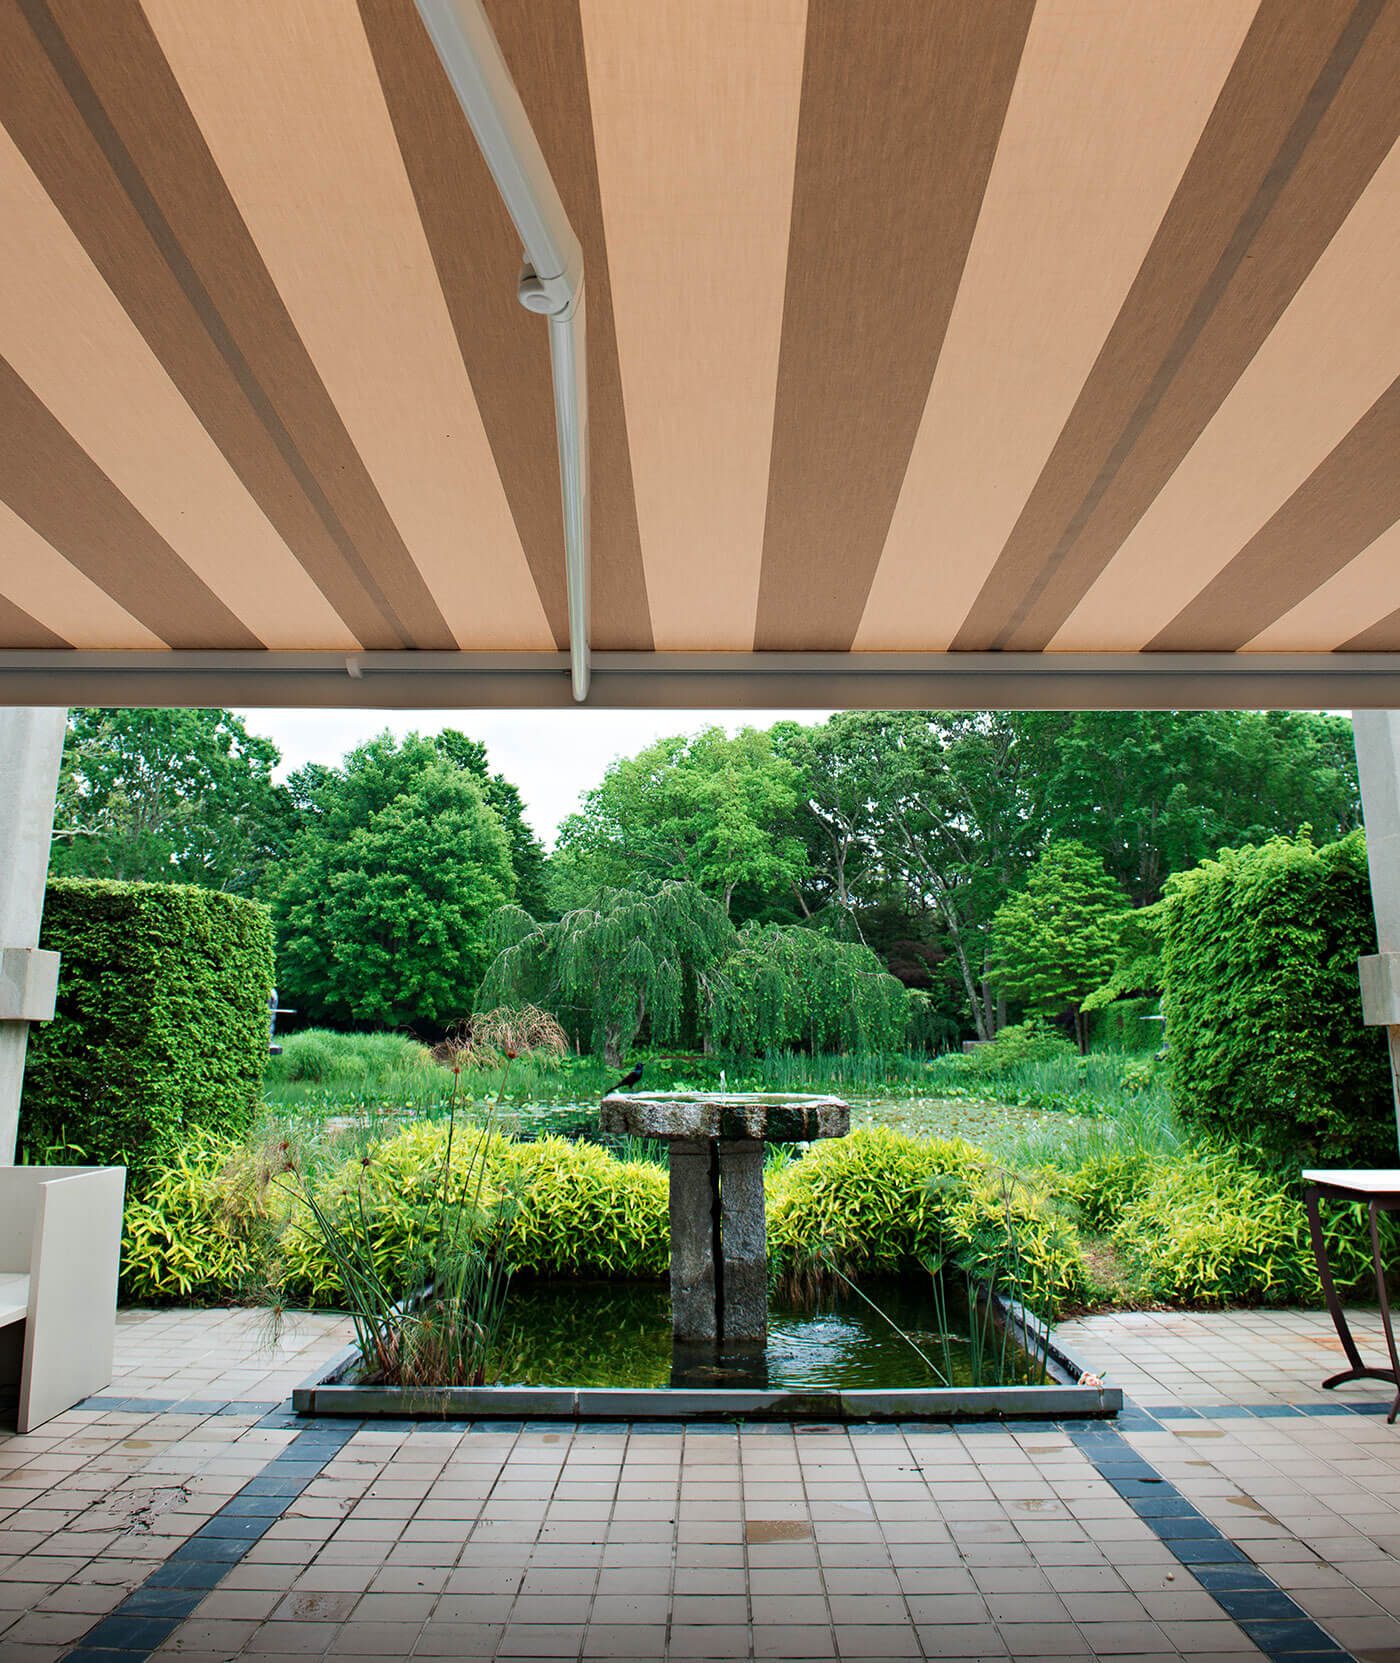 Outdoor Garden Shaded By Retractable Awning With Striped Beige Sunbrella Fabric